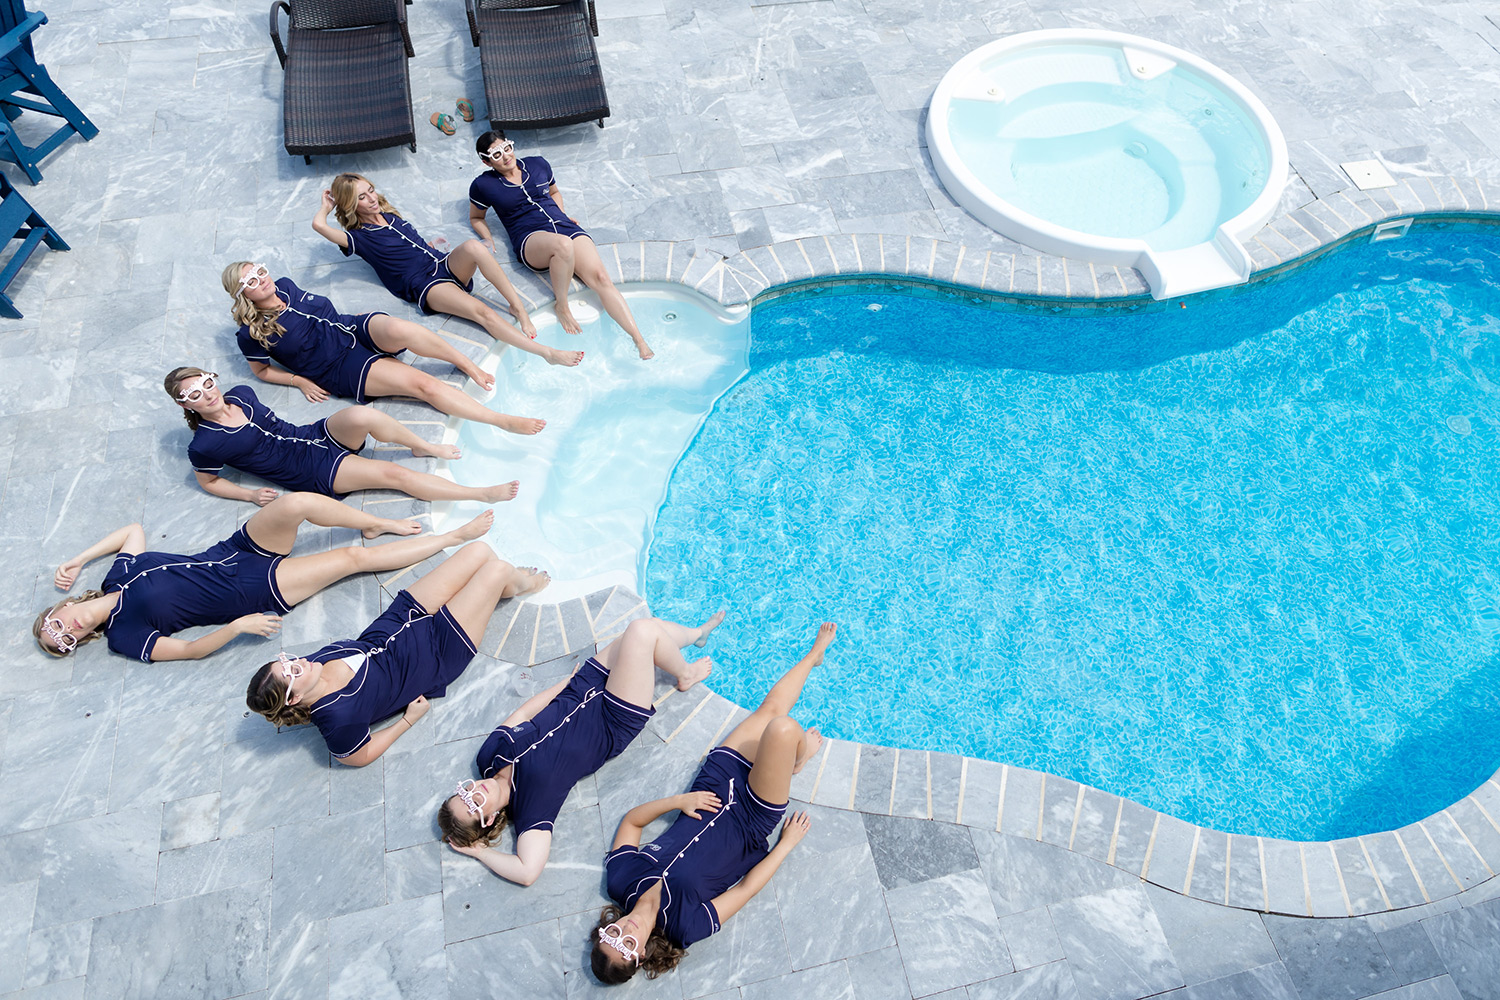 Canon Explorers of Light  – Q&A with Photographer Vanessa Joy. Women in a formation beside a pool shot from above.